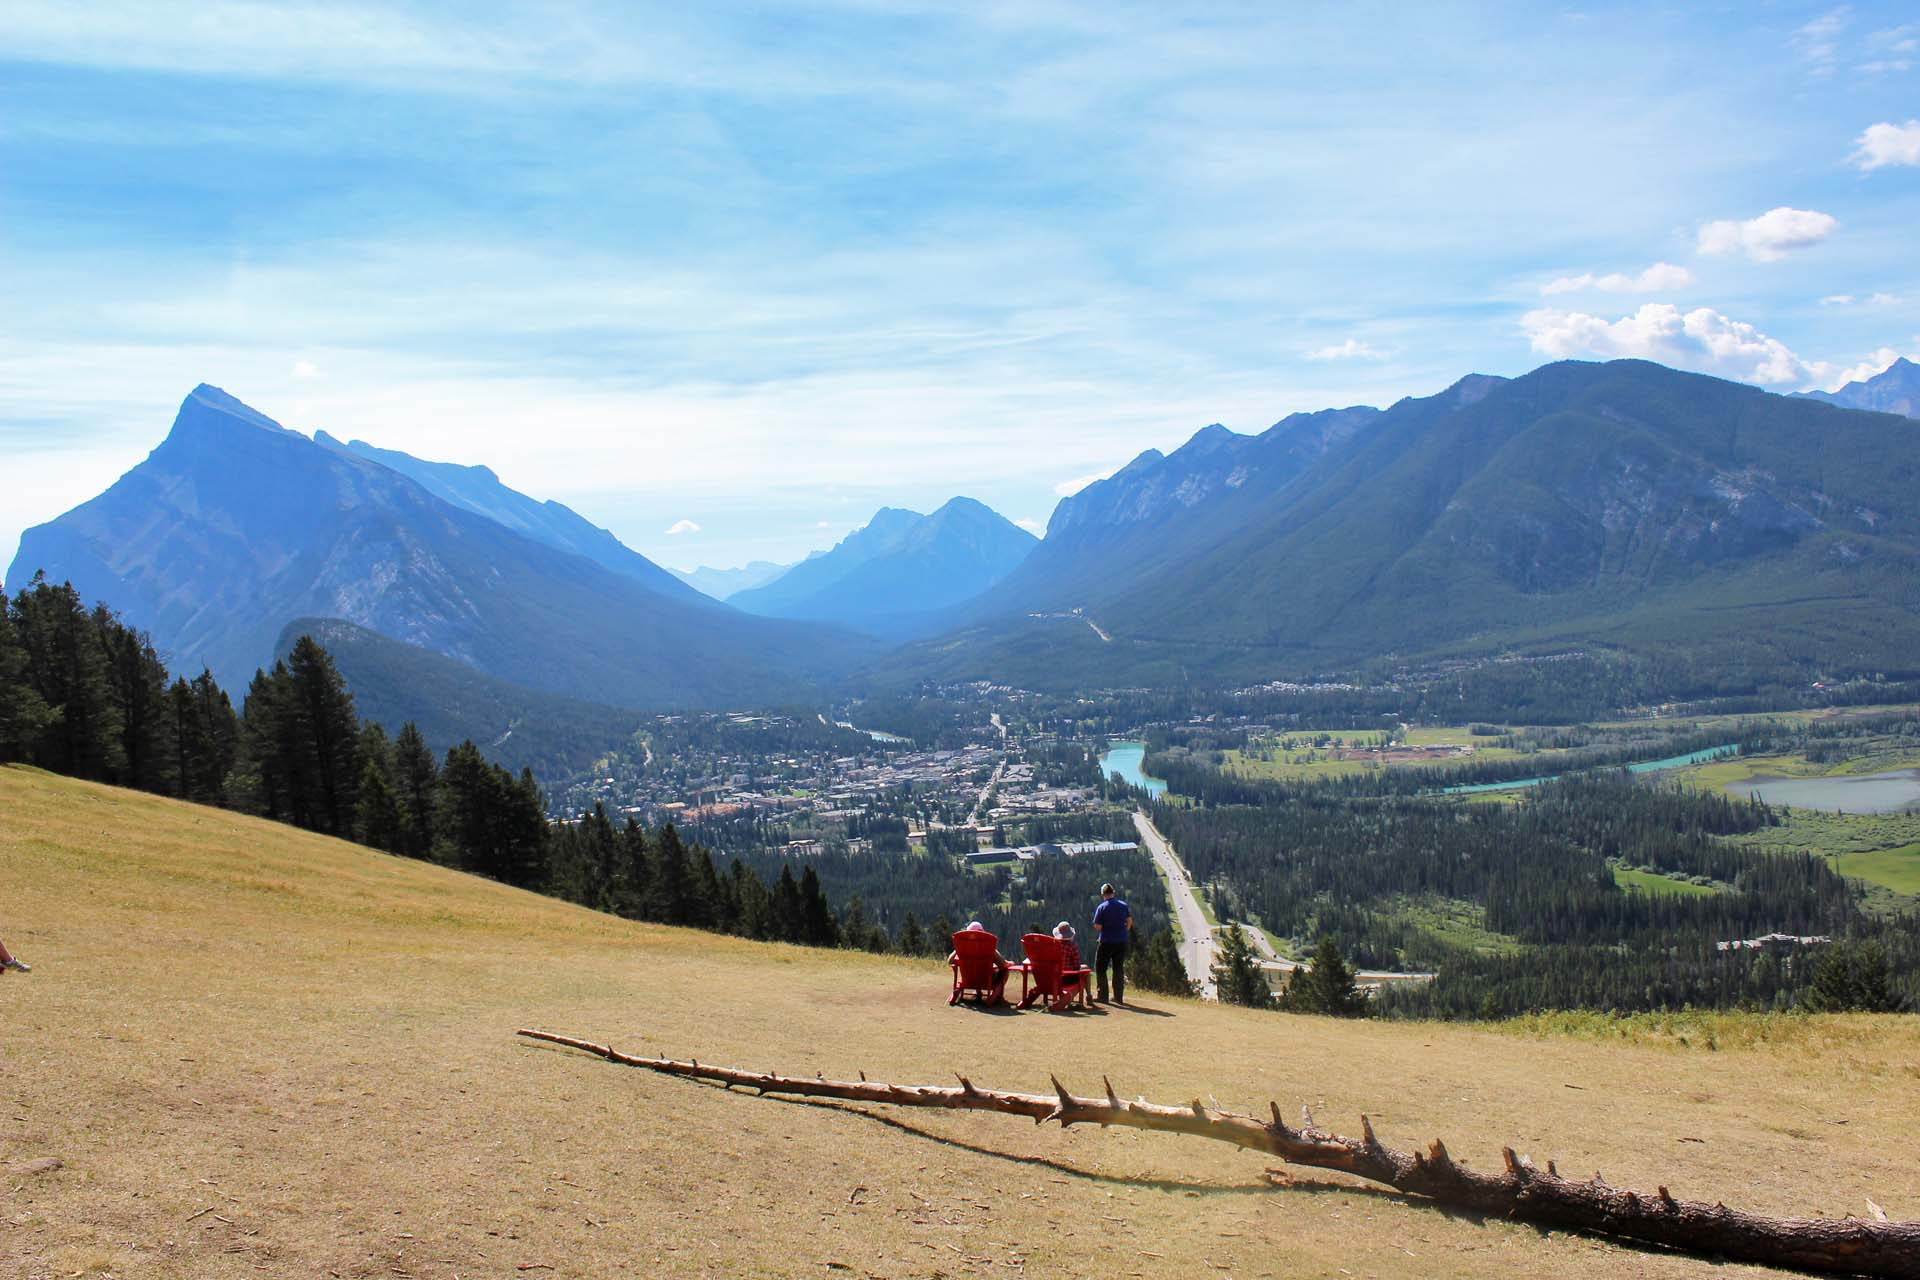 Castle Mountain, Mount Rundle and Mount Norquay are just a few of the spectacular peaks that surround the resort town of Banff, 90 minutes from our final destination in Calgary.